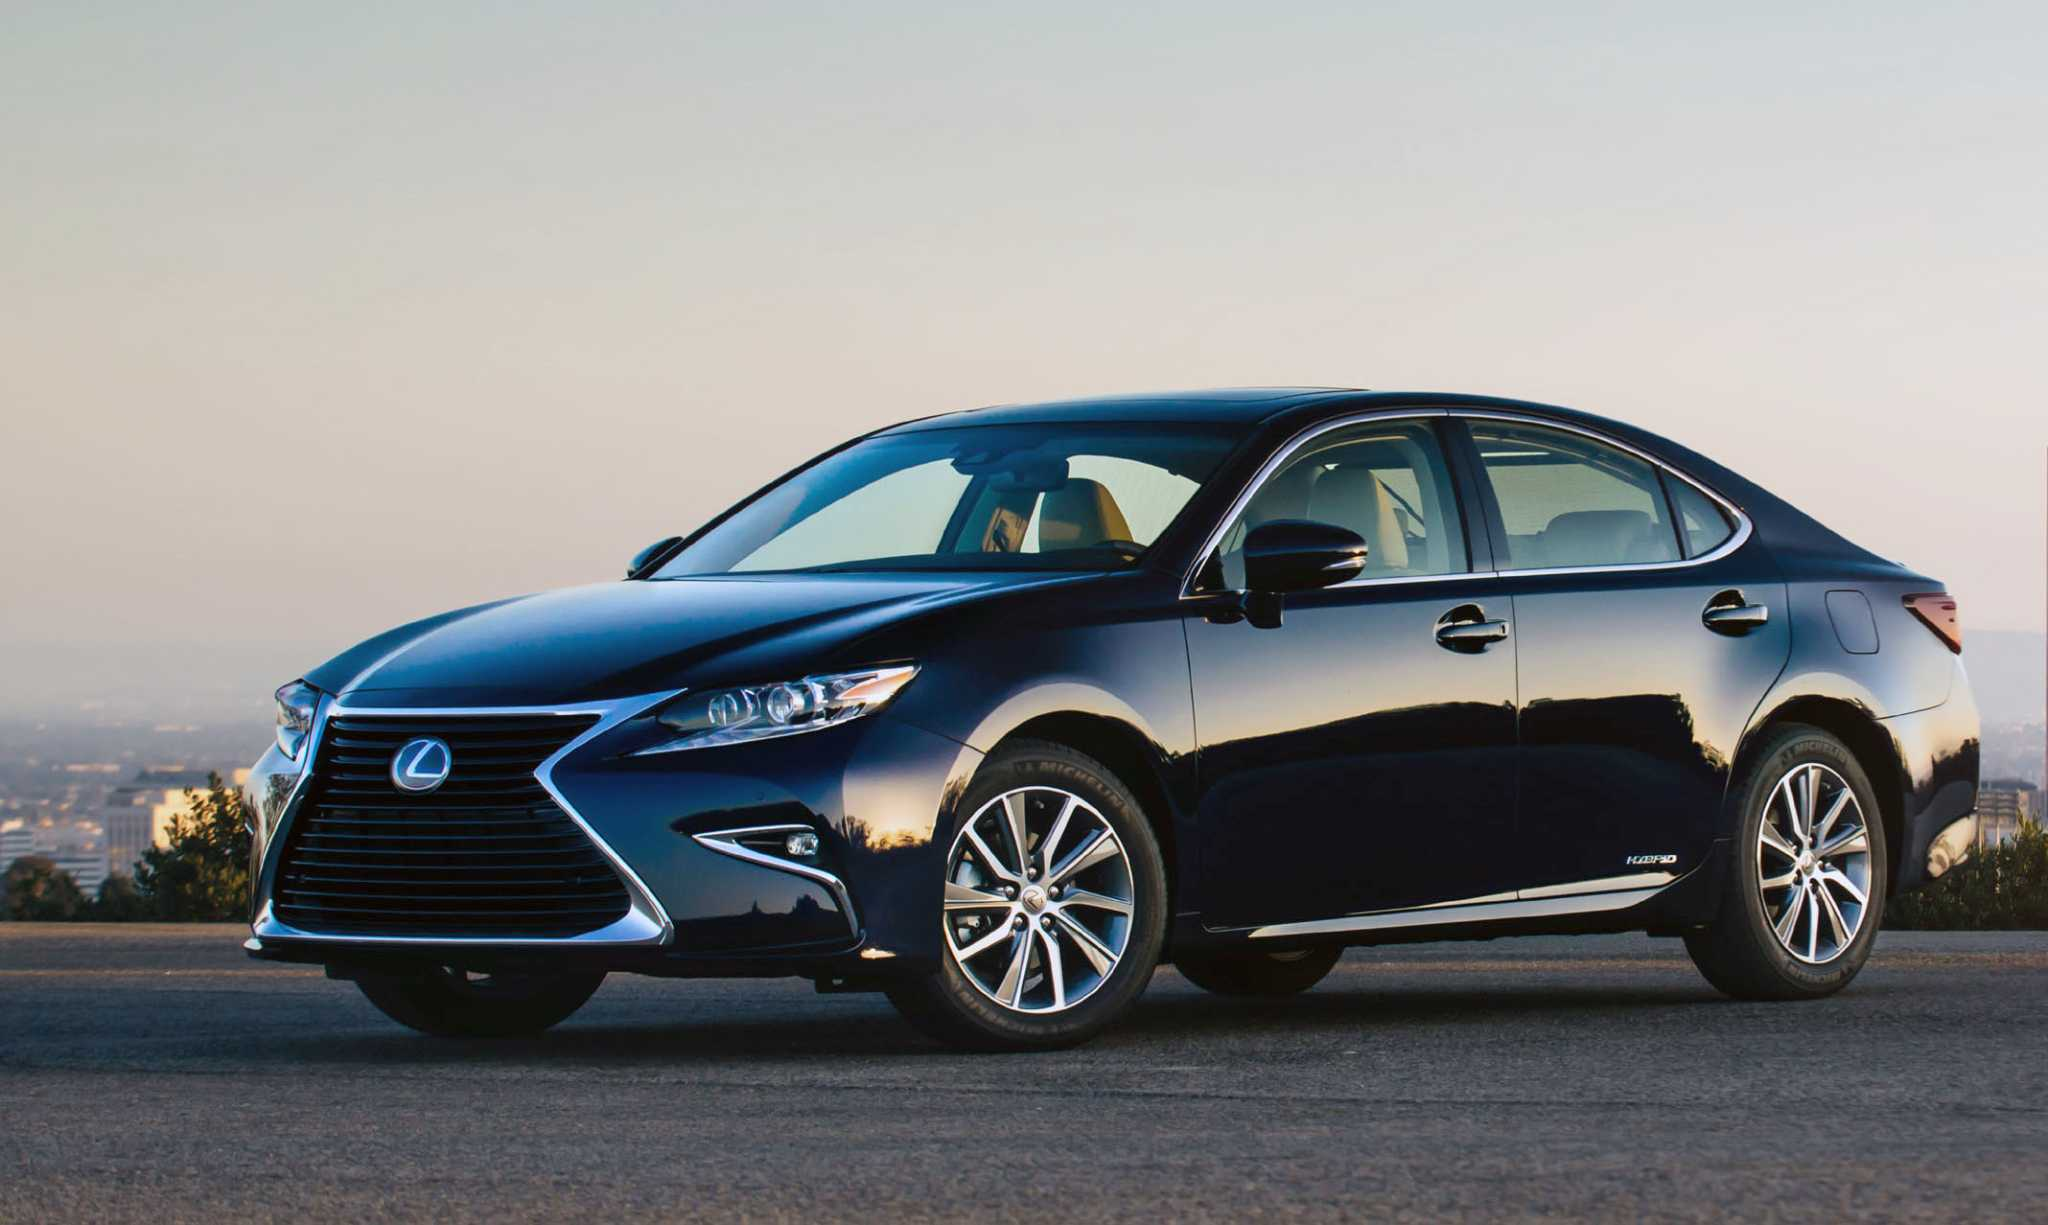 2017 lexus es hybrid goes long on efficiency legroom houston chronicle. Black Bedroom Furniture Sets. Home Design Ideas